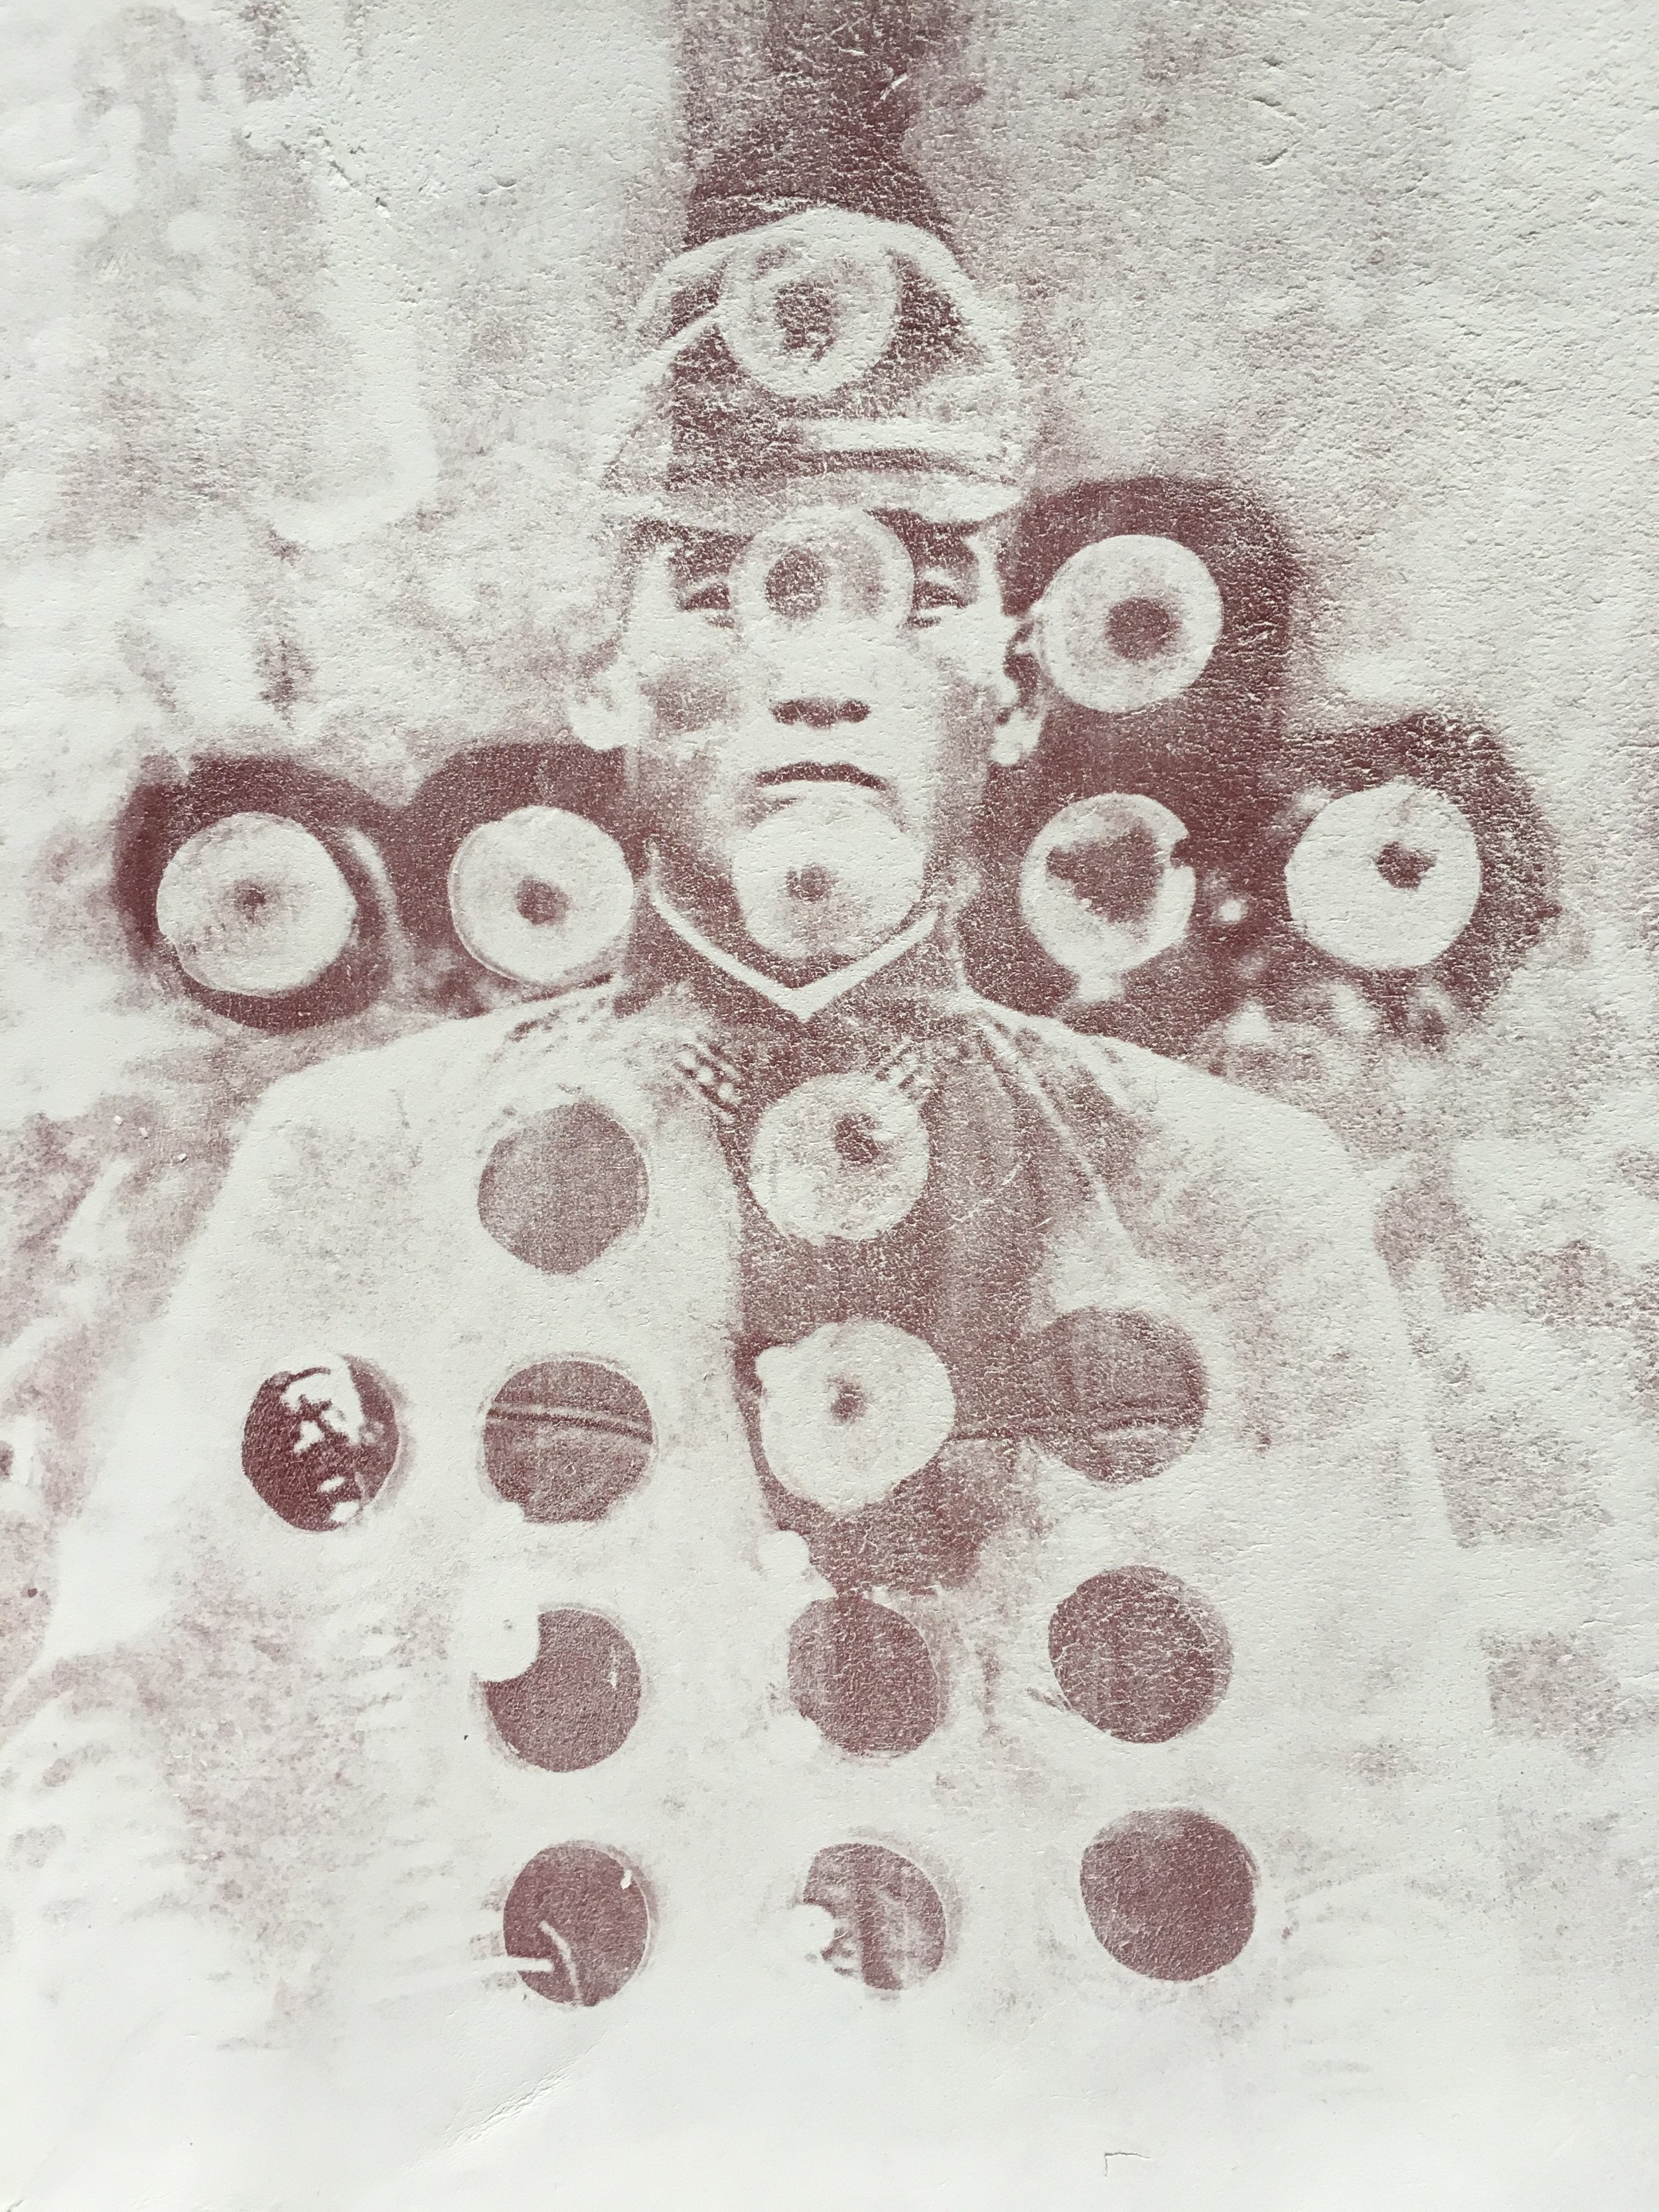 Shining Officer, 2018, photocopy print on clay.